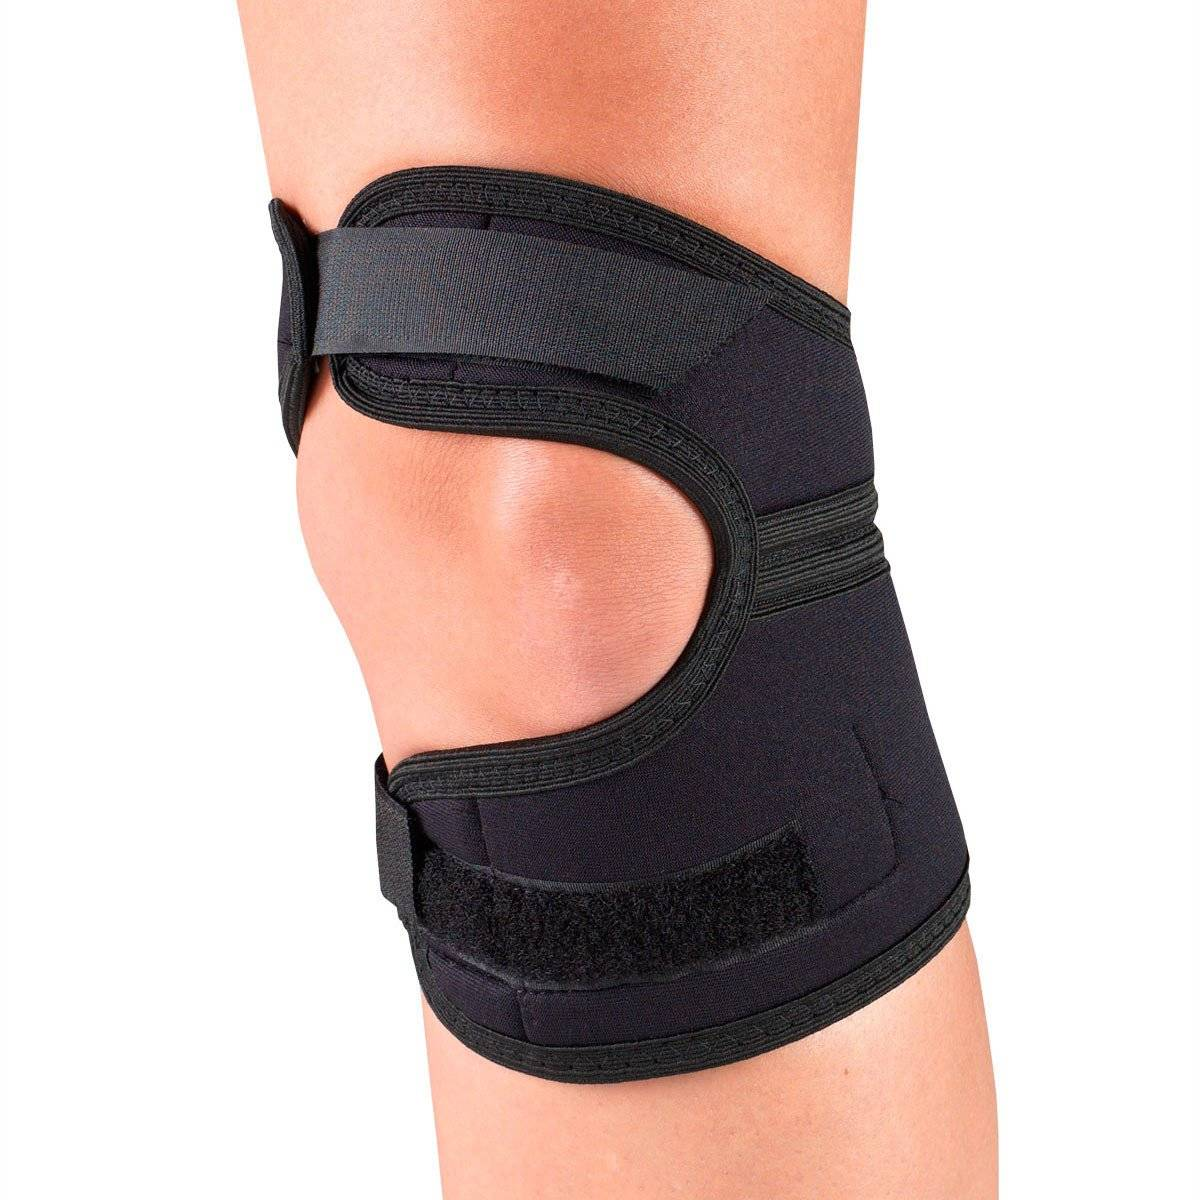 0326 / NEOPRENE PATELLAR STABILIZER